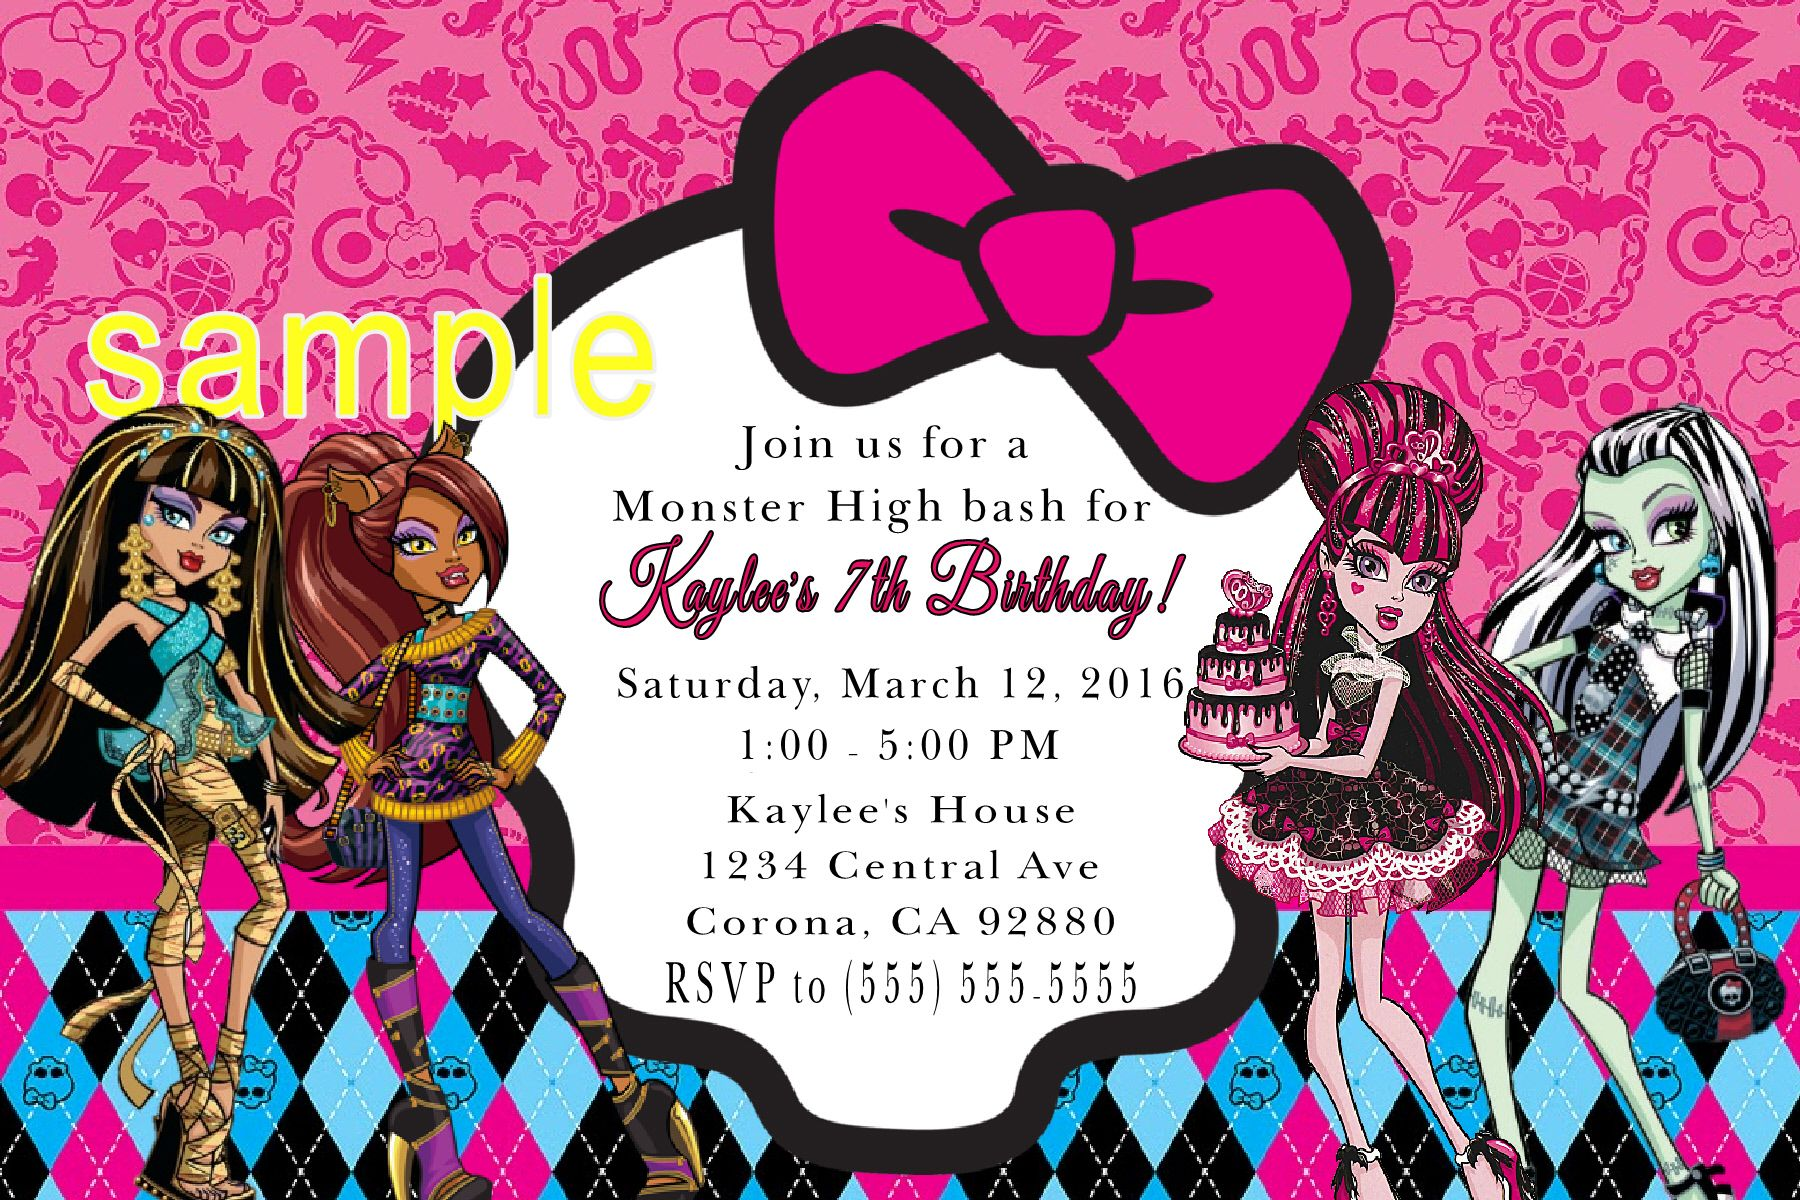 Monster High Birthday Invitation. Click on the image twice to place orders or follow me on facebook. or email me at the address in BIO.